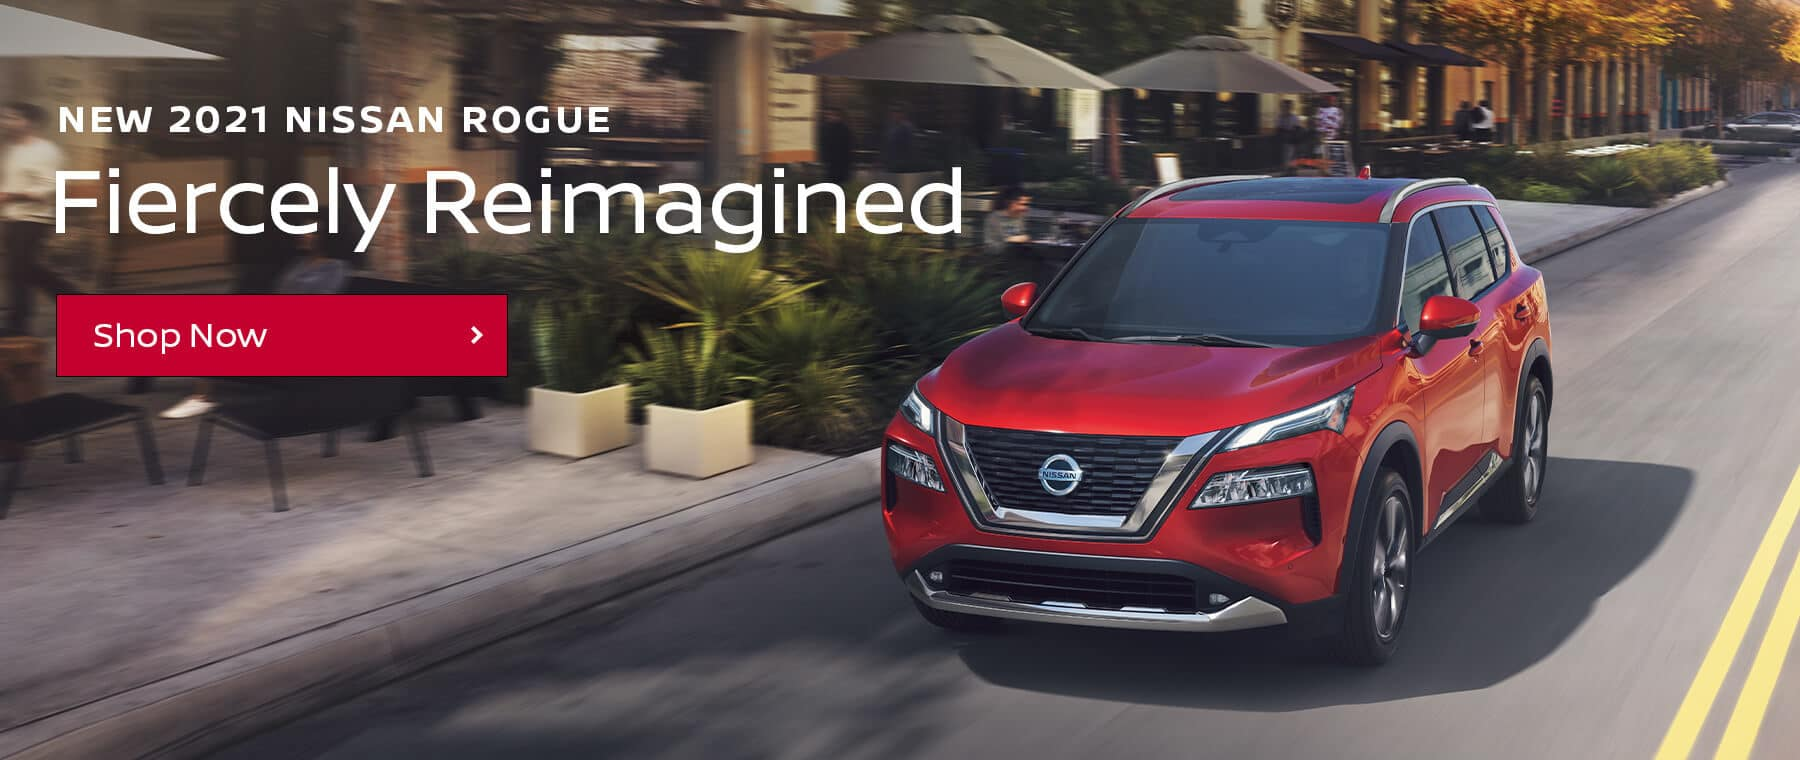 The New Fiercely Reimagined 2021 Nissan Rogue Near Clarksville, Indiana